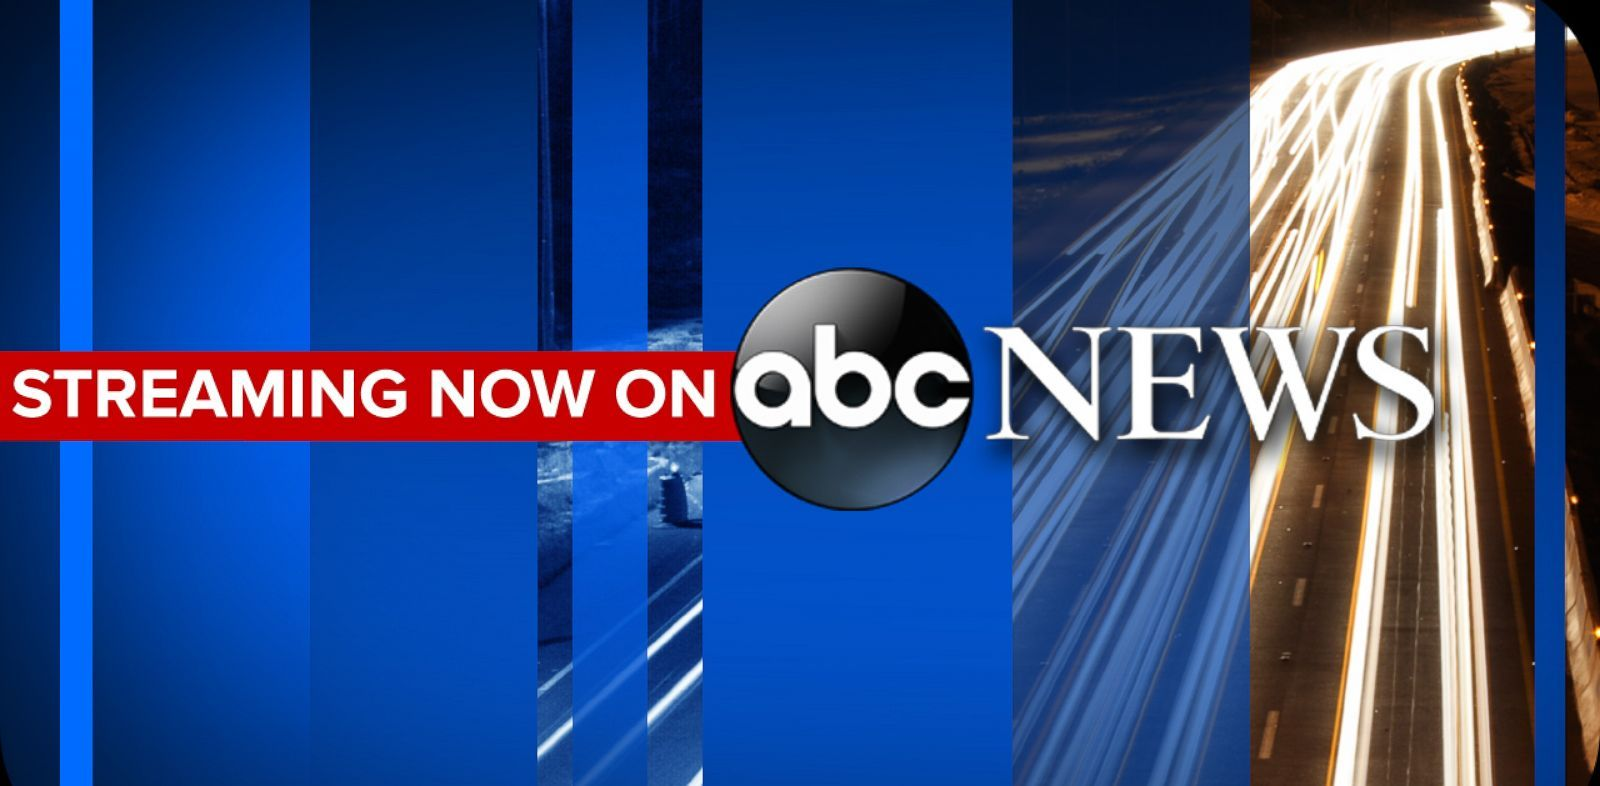 ABC NEWS LIVE: Dad's Heartfelt Plea to Congress After 2-Year-Old ...